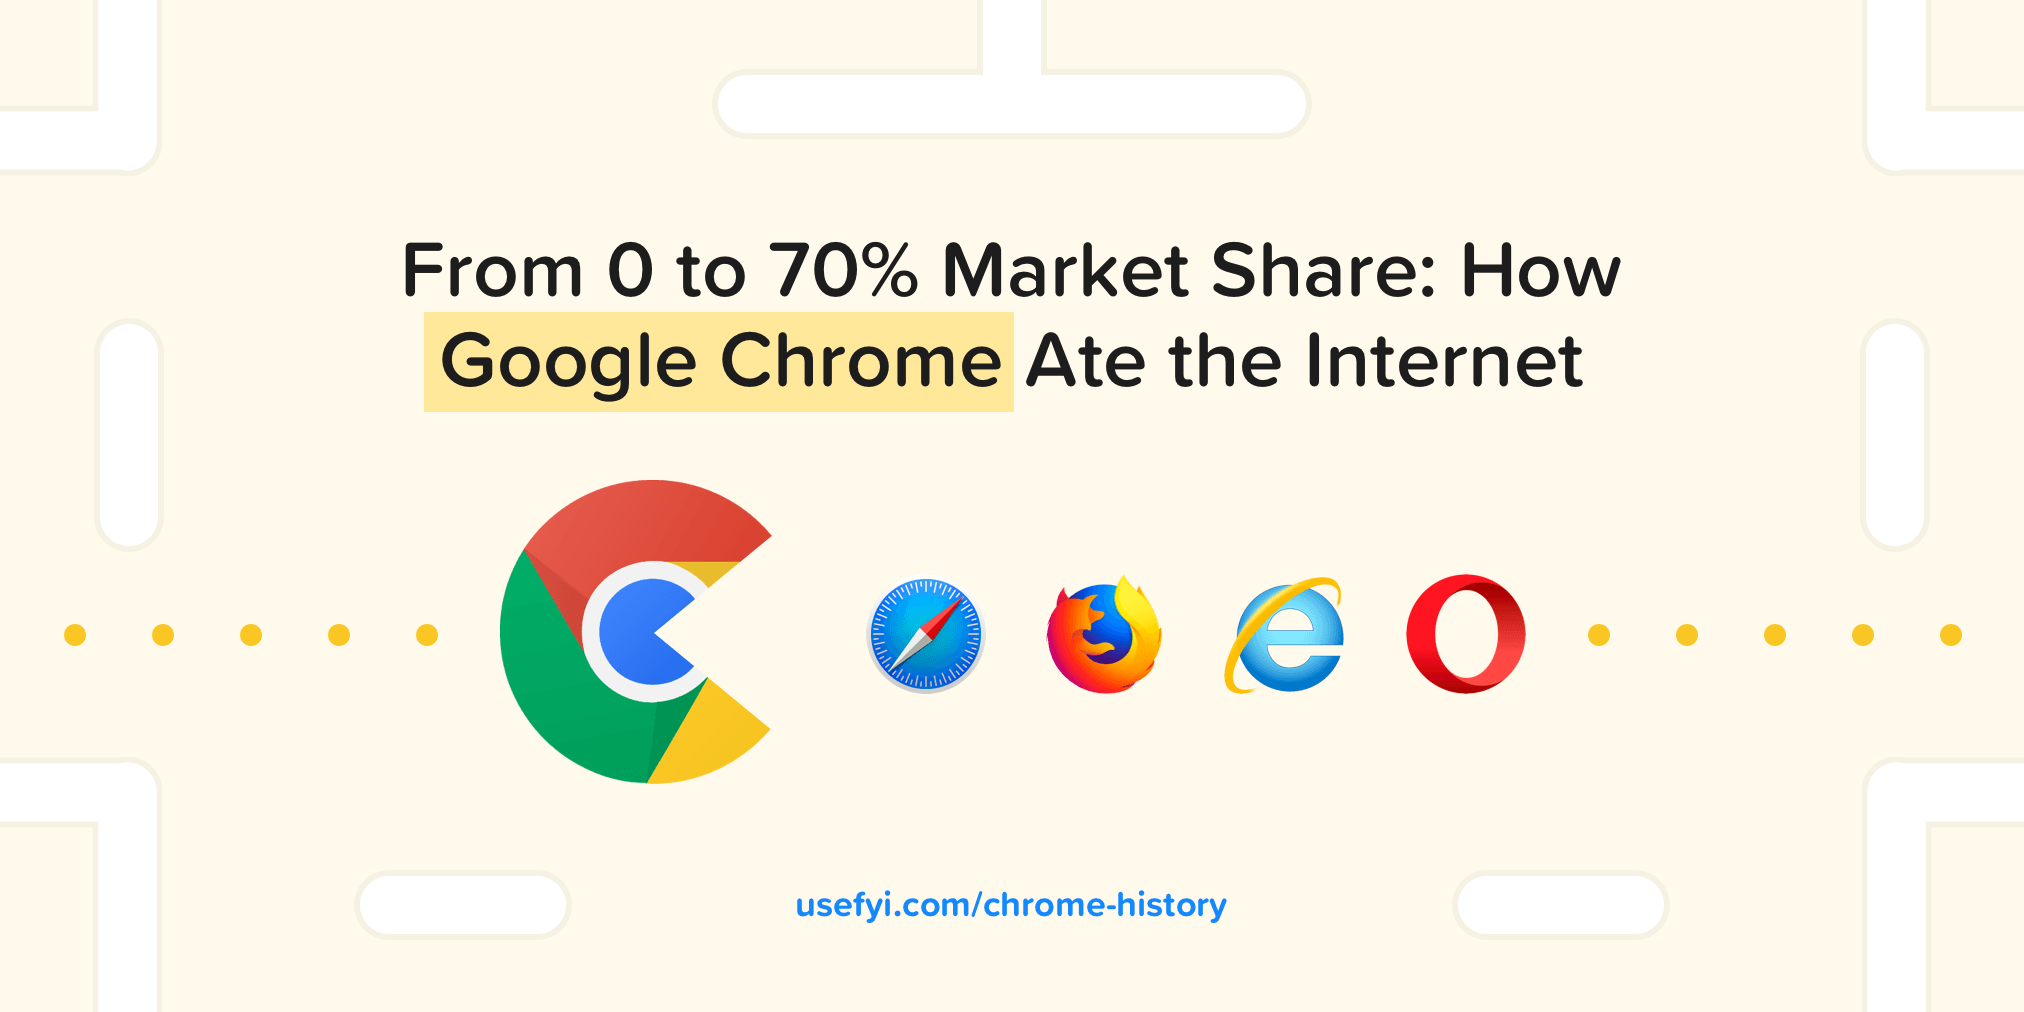 Chrome Ate the Internet